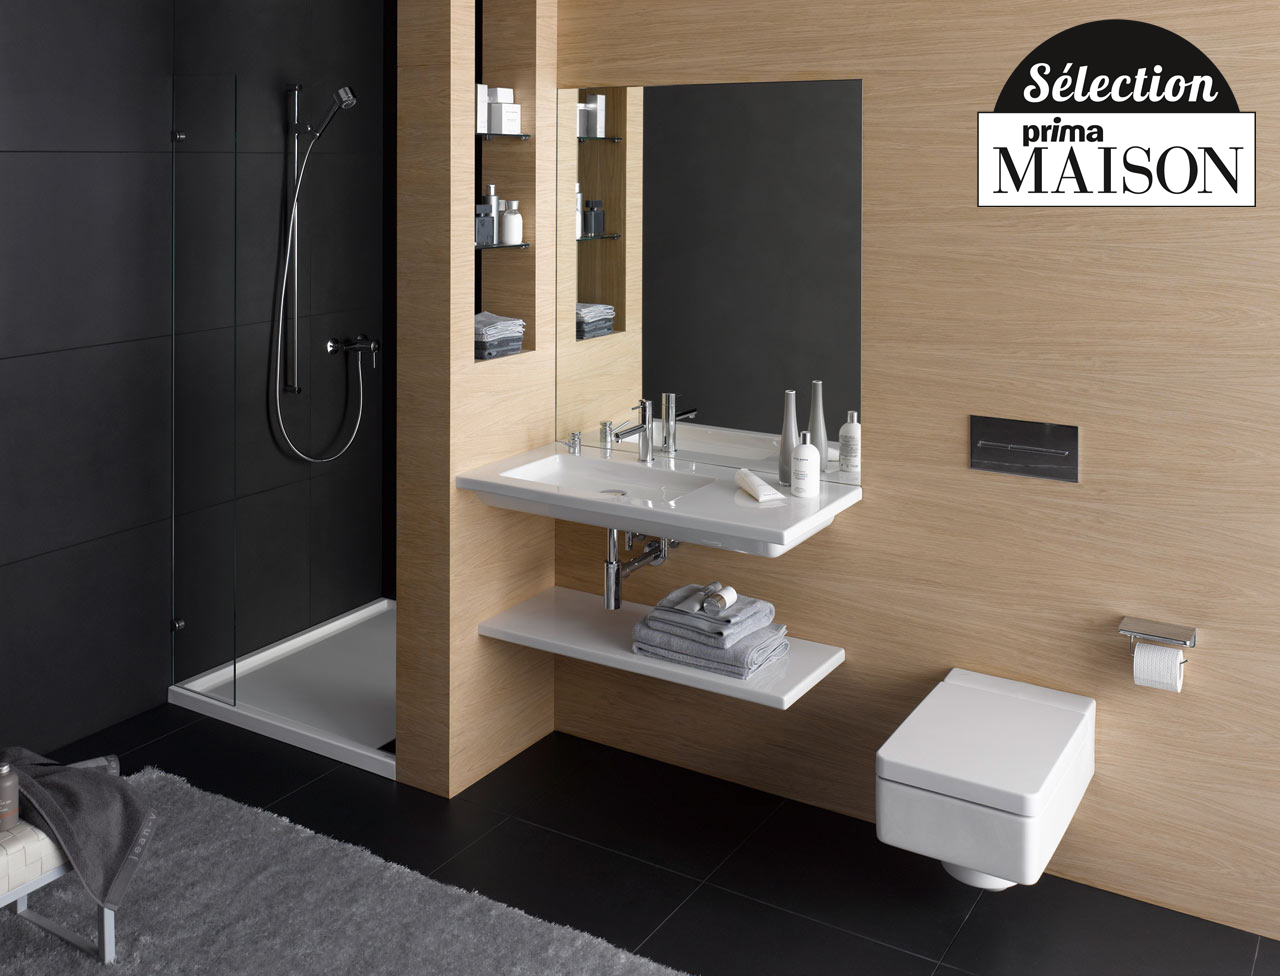 D coration salle de bain 2016 exemples d 39 am nagements for La decoration salle de bain